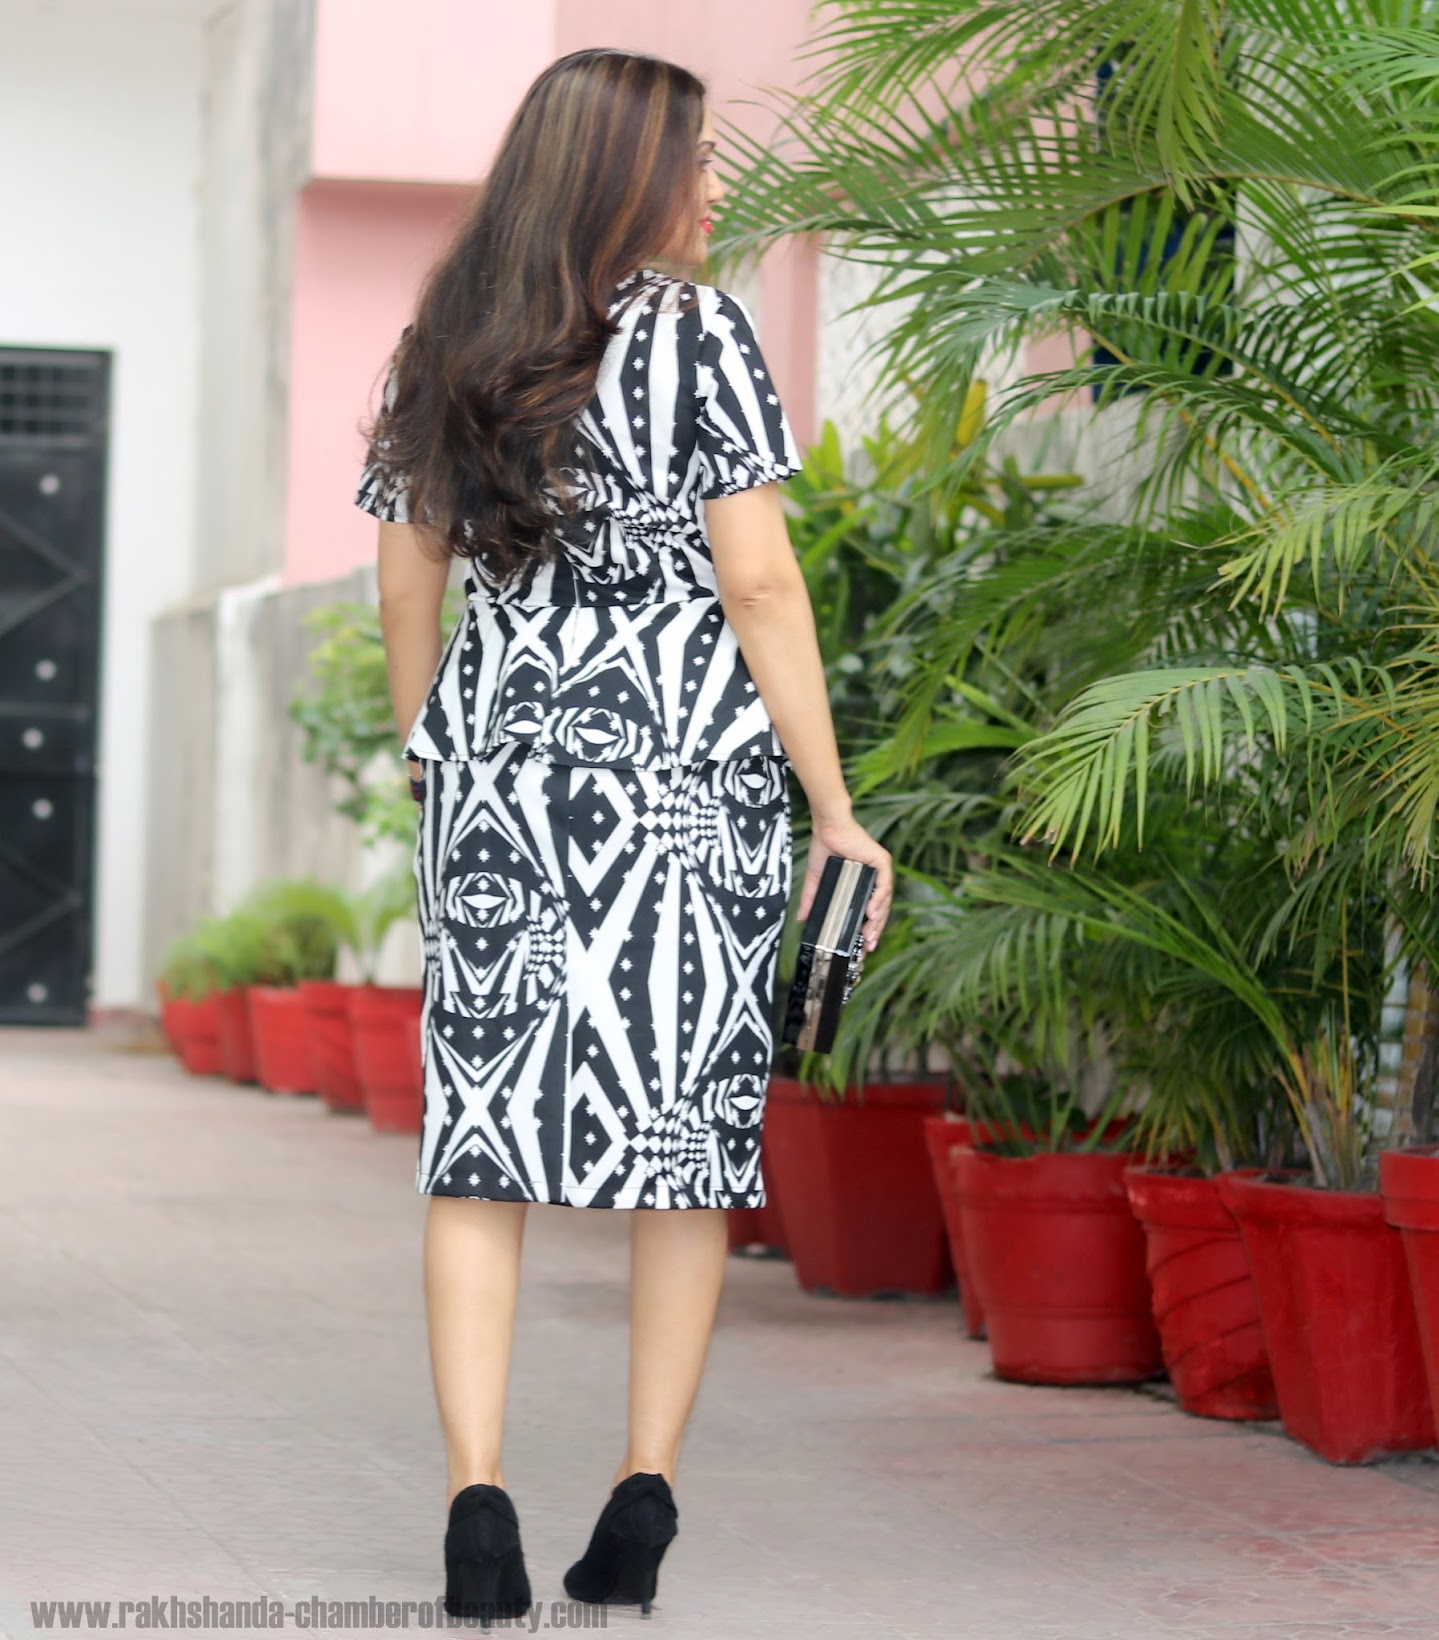 The monochrome fashion trend, Everyhting5pounds Peplum dress, Indian fashion blogger, Chamber of Beauty